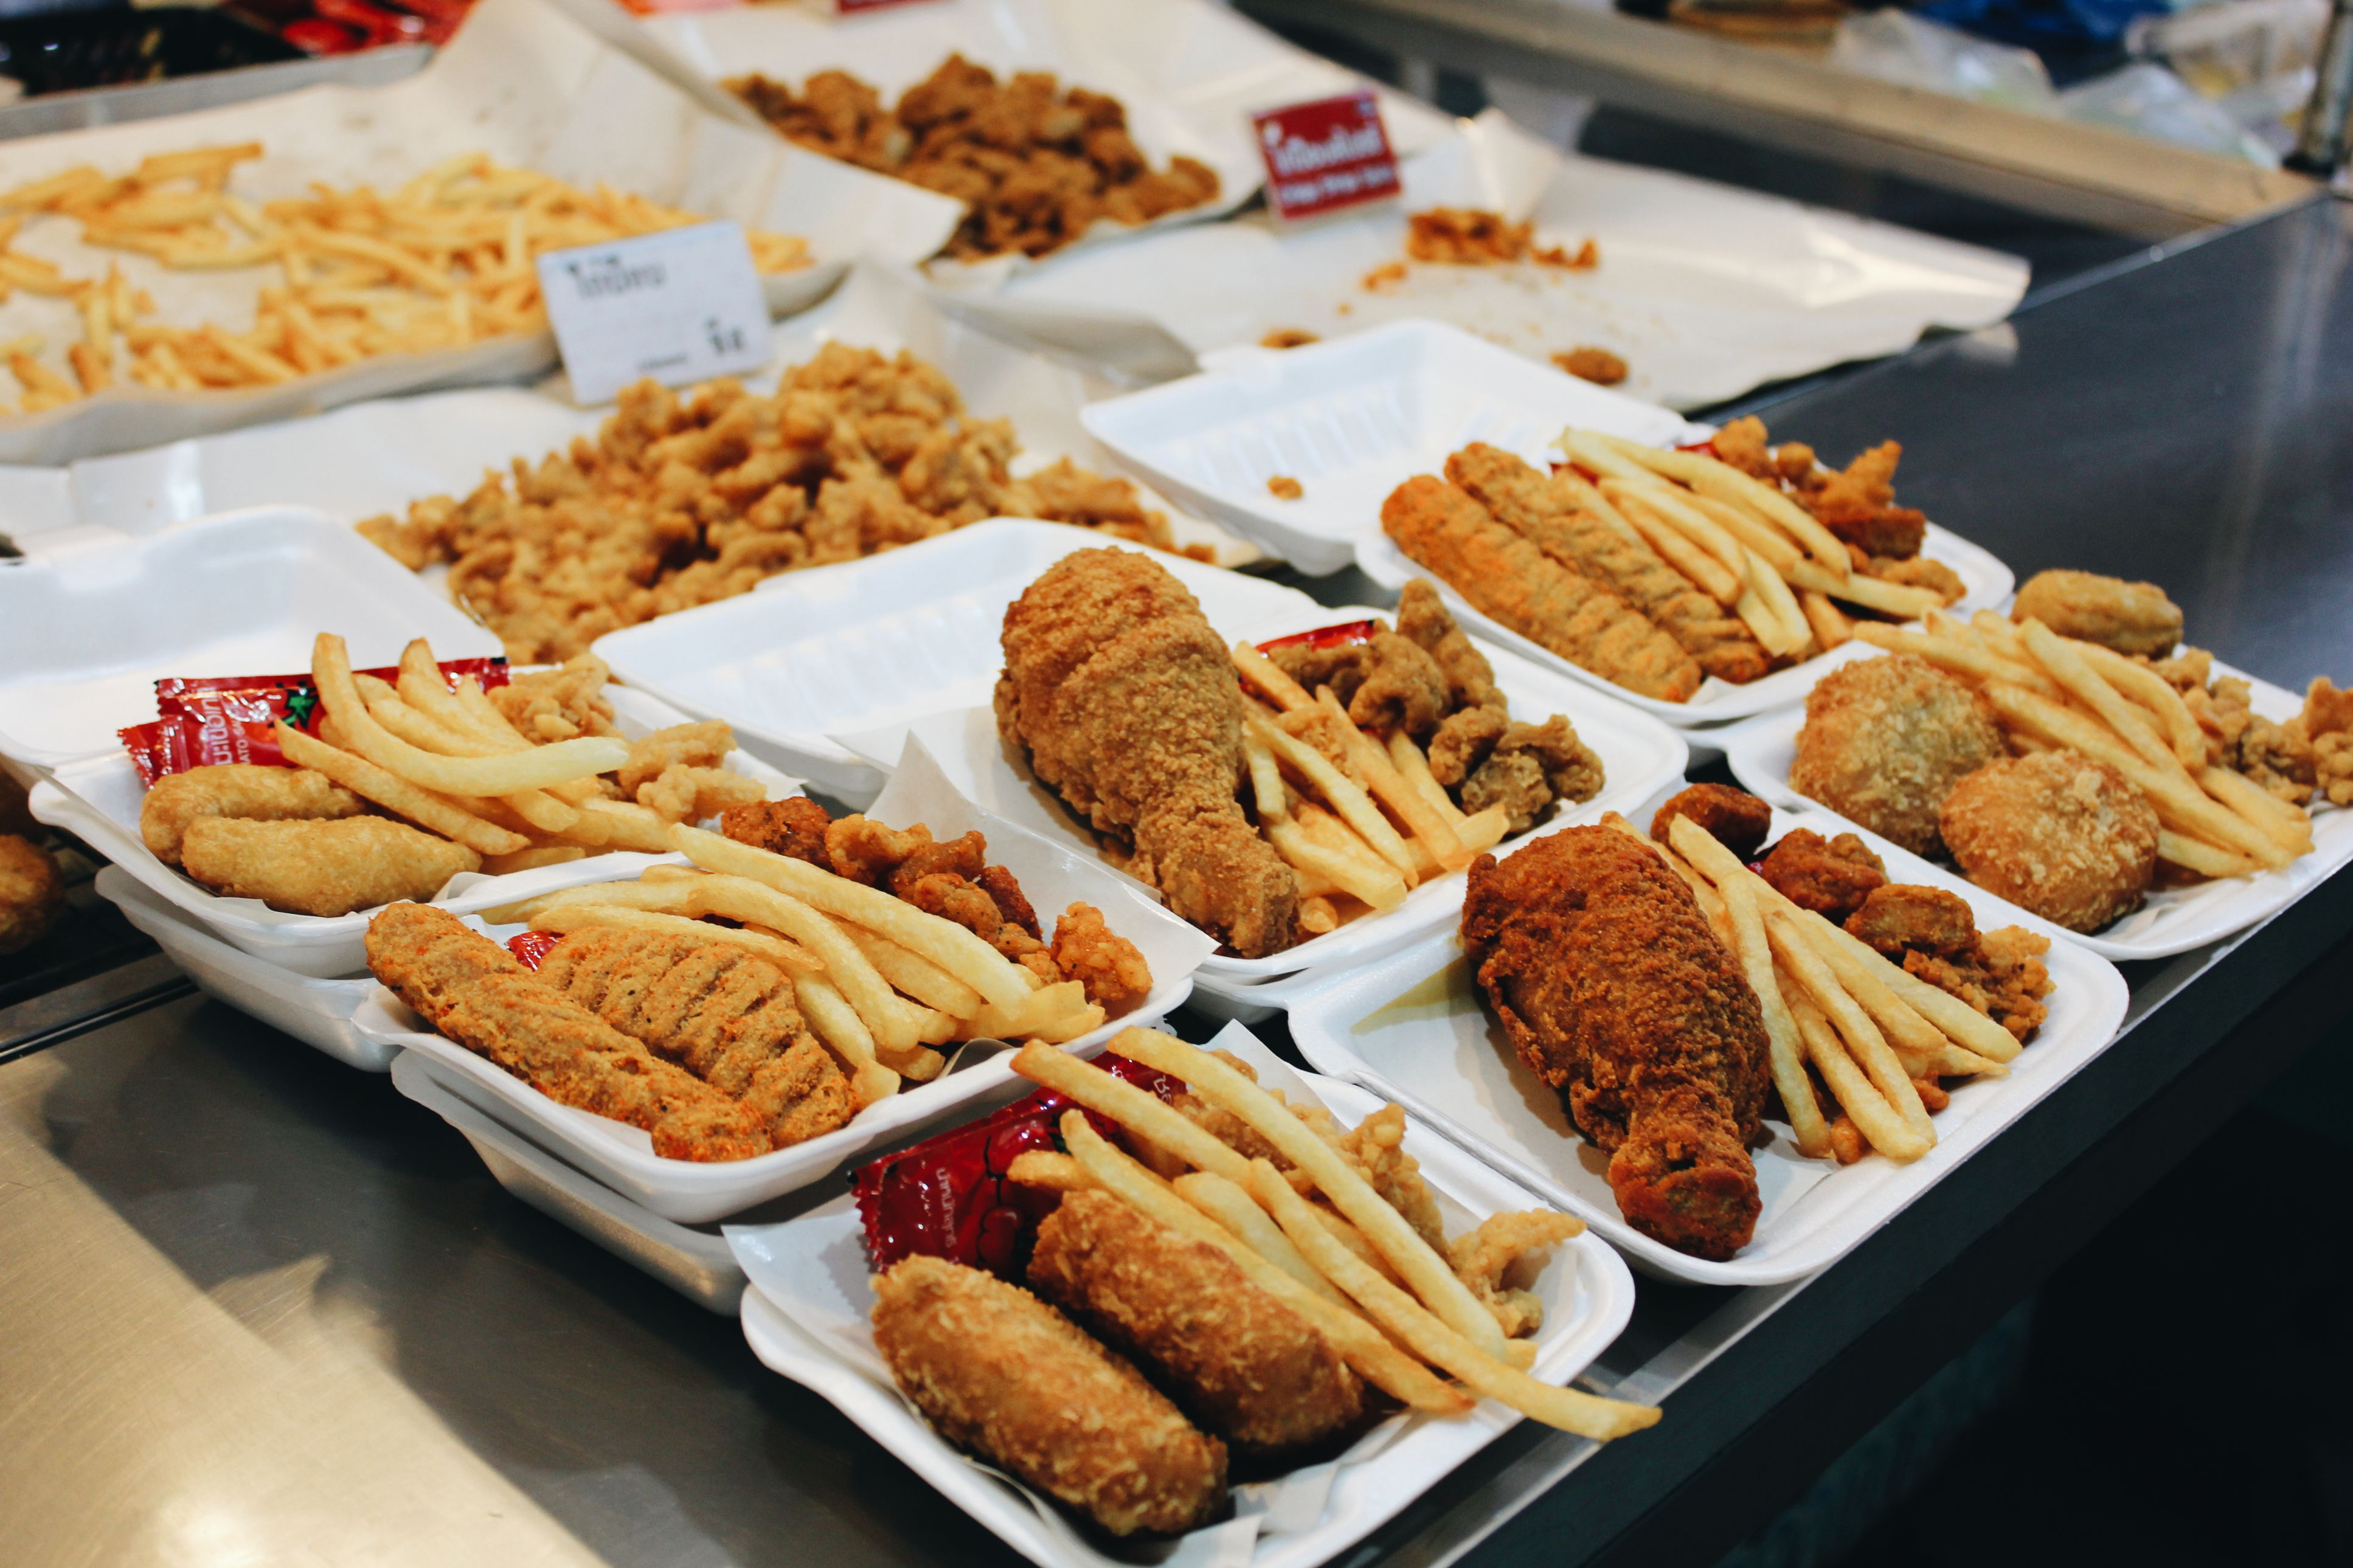 variety of fried foods